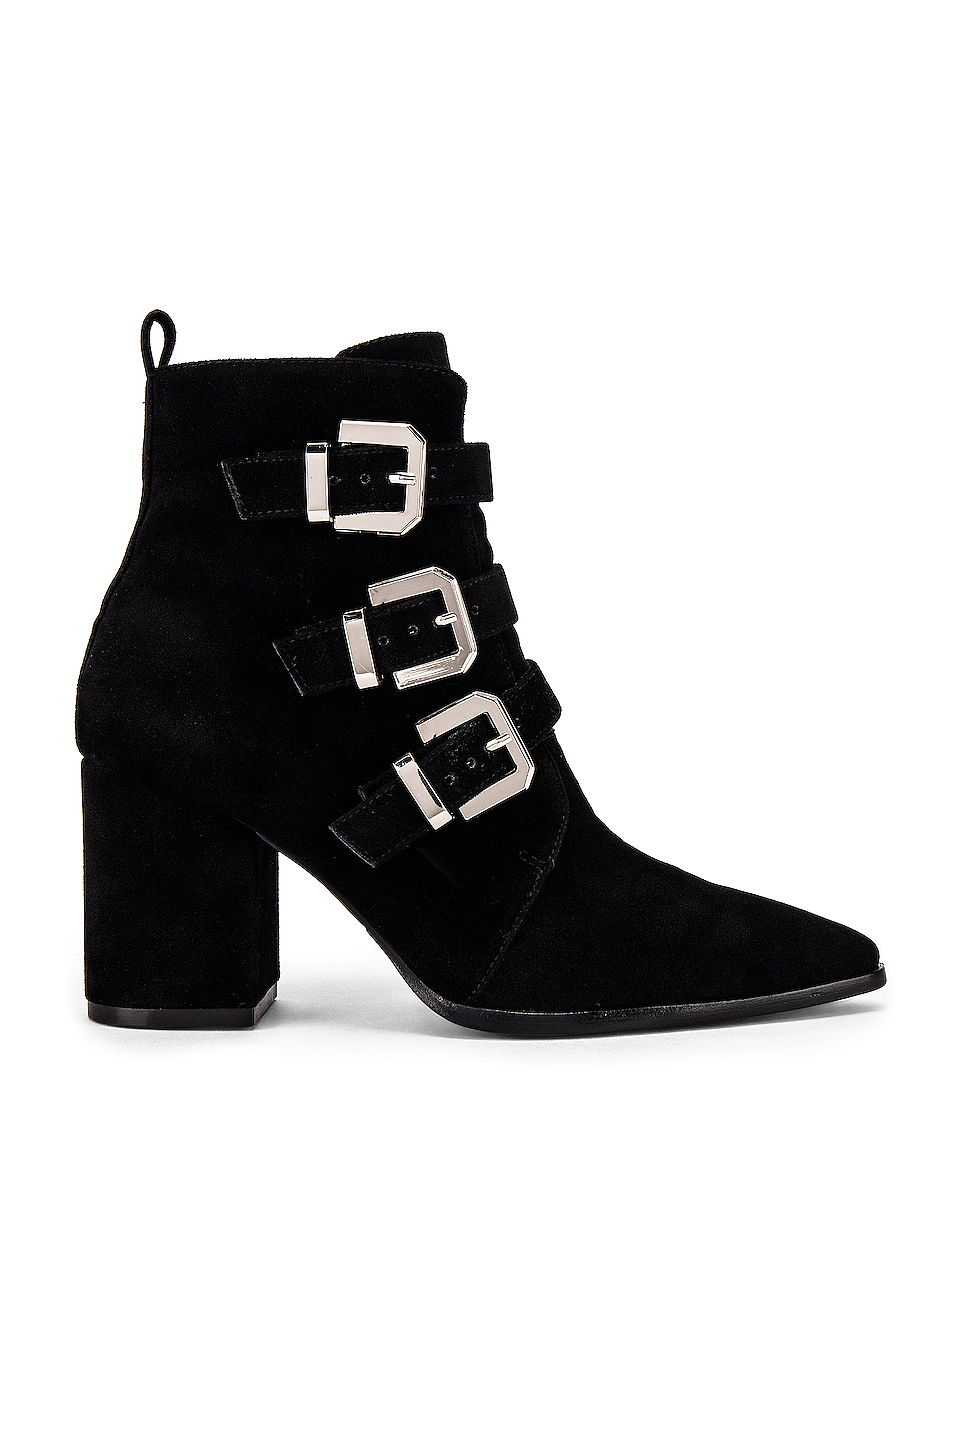 House of Harlow 1960 X REVOLVE Doute Bootie in Black